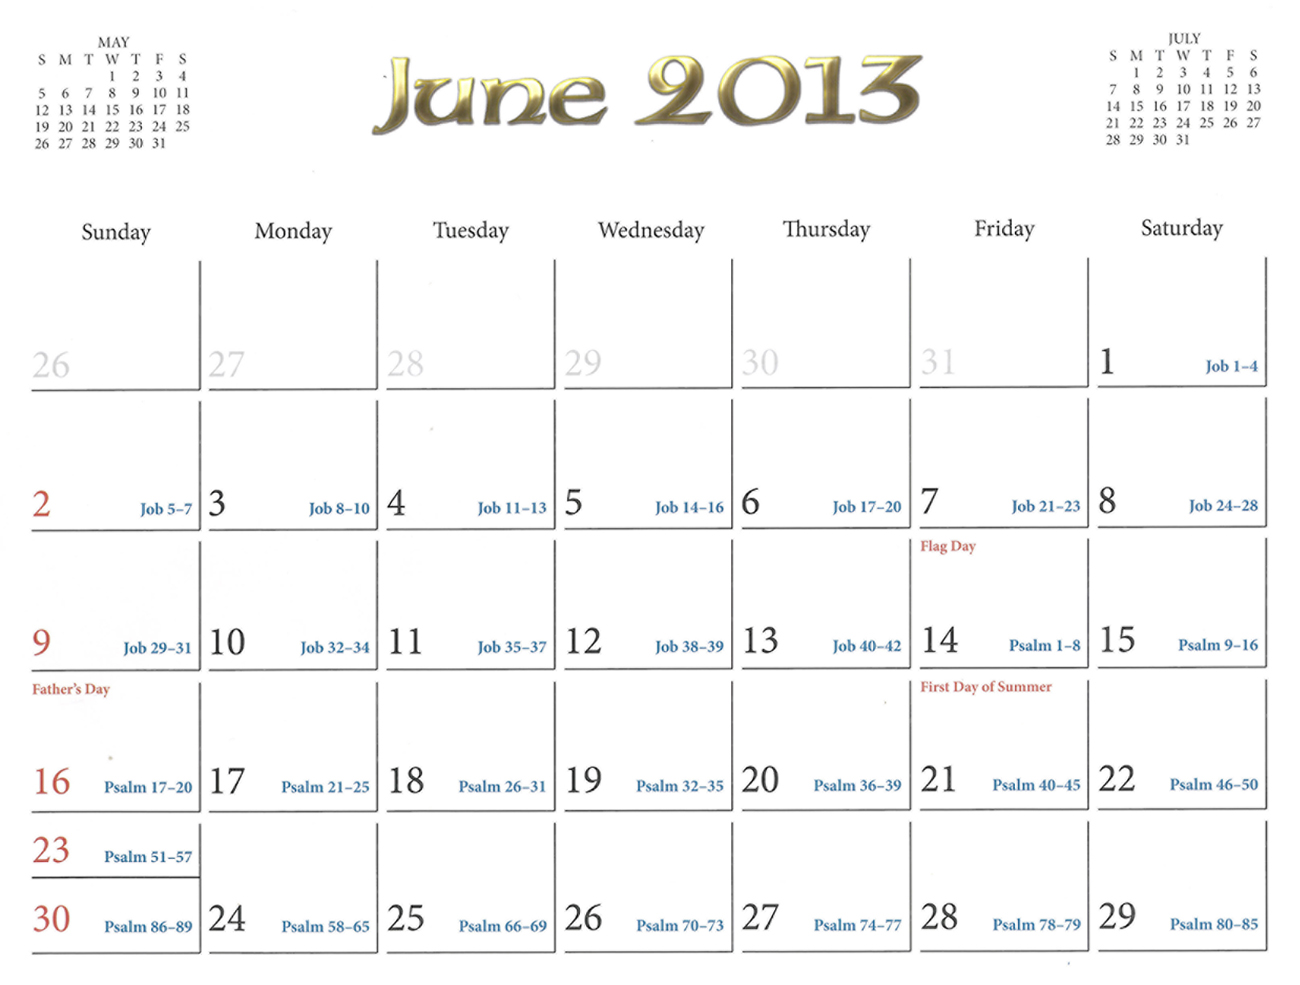 2013 Prophecy Calendar: June - Irrael's Rejection of Jesus Christ as the Messiah